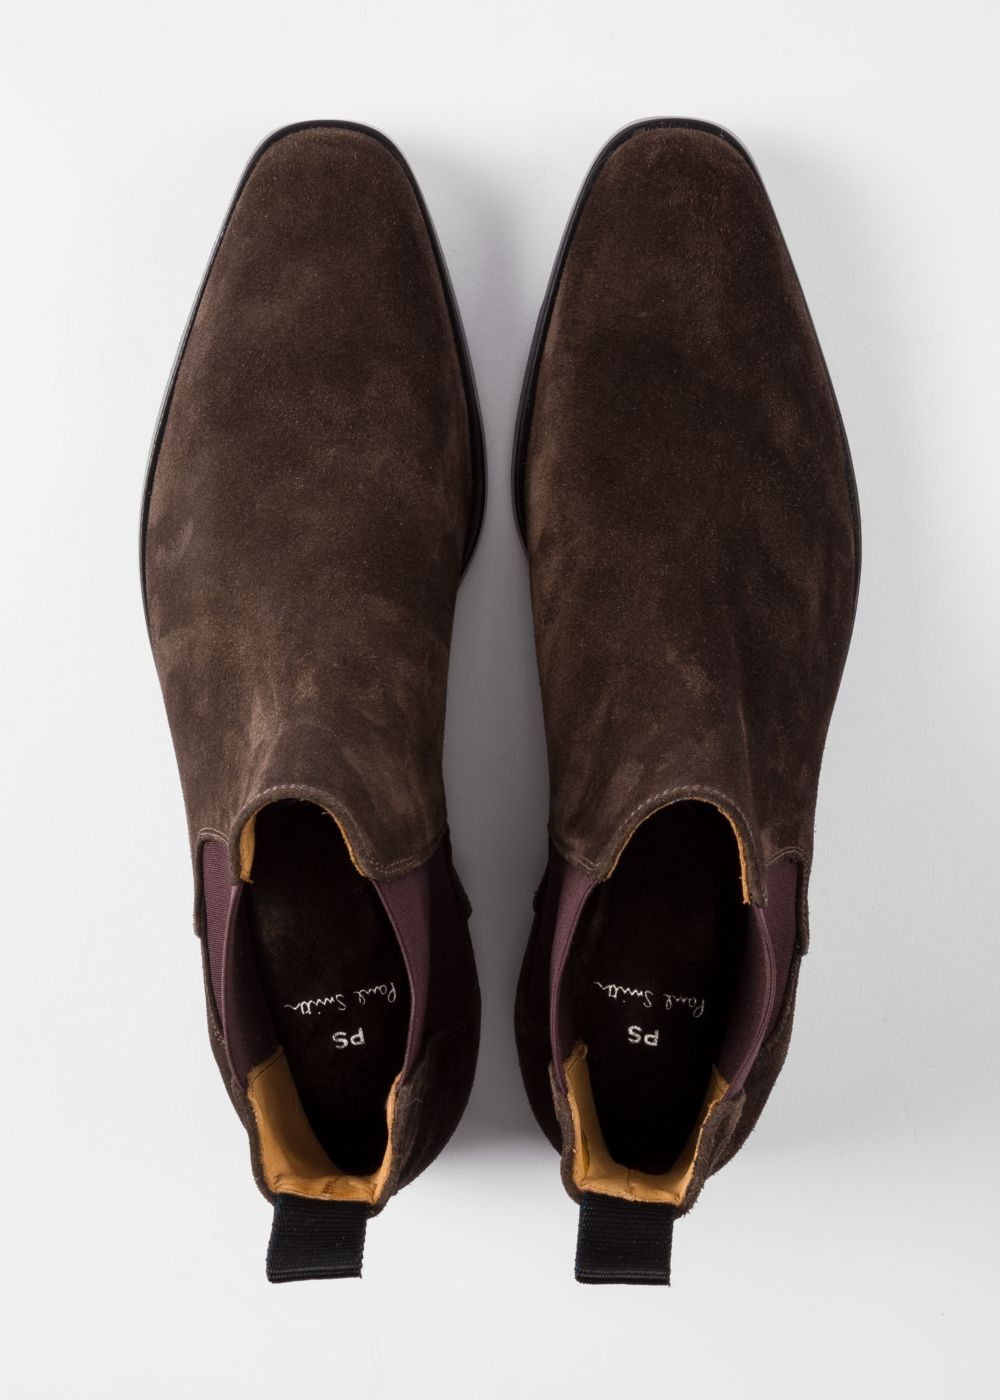 Men S Dark Brown Suede Gerald Chelsea Boots By Paul Smith Paul Smith Couro Liso Calca Masculina Chelsea